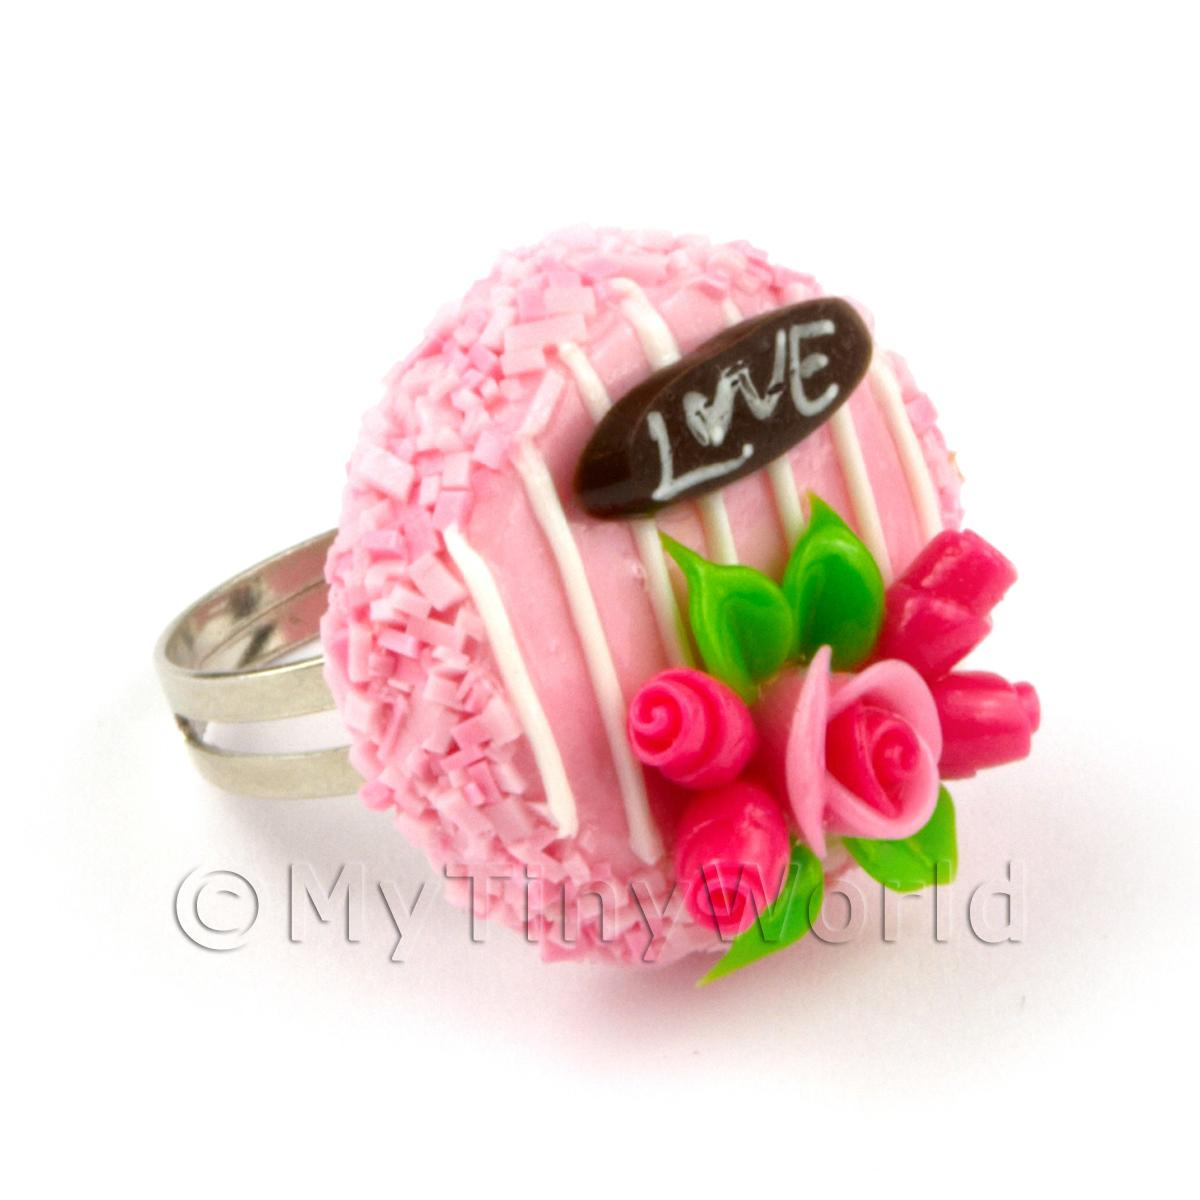 Miniature Handmade Adjustable Pink Cake Ring